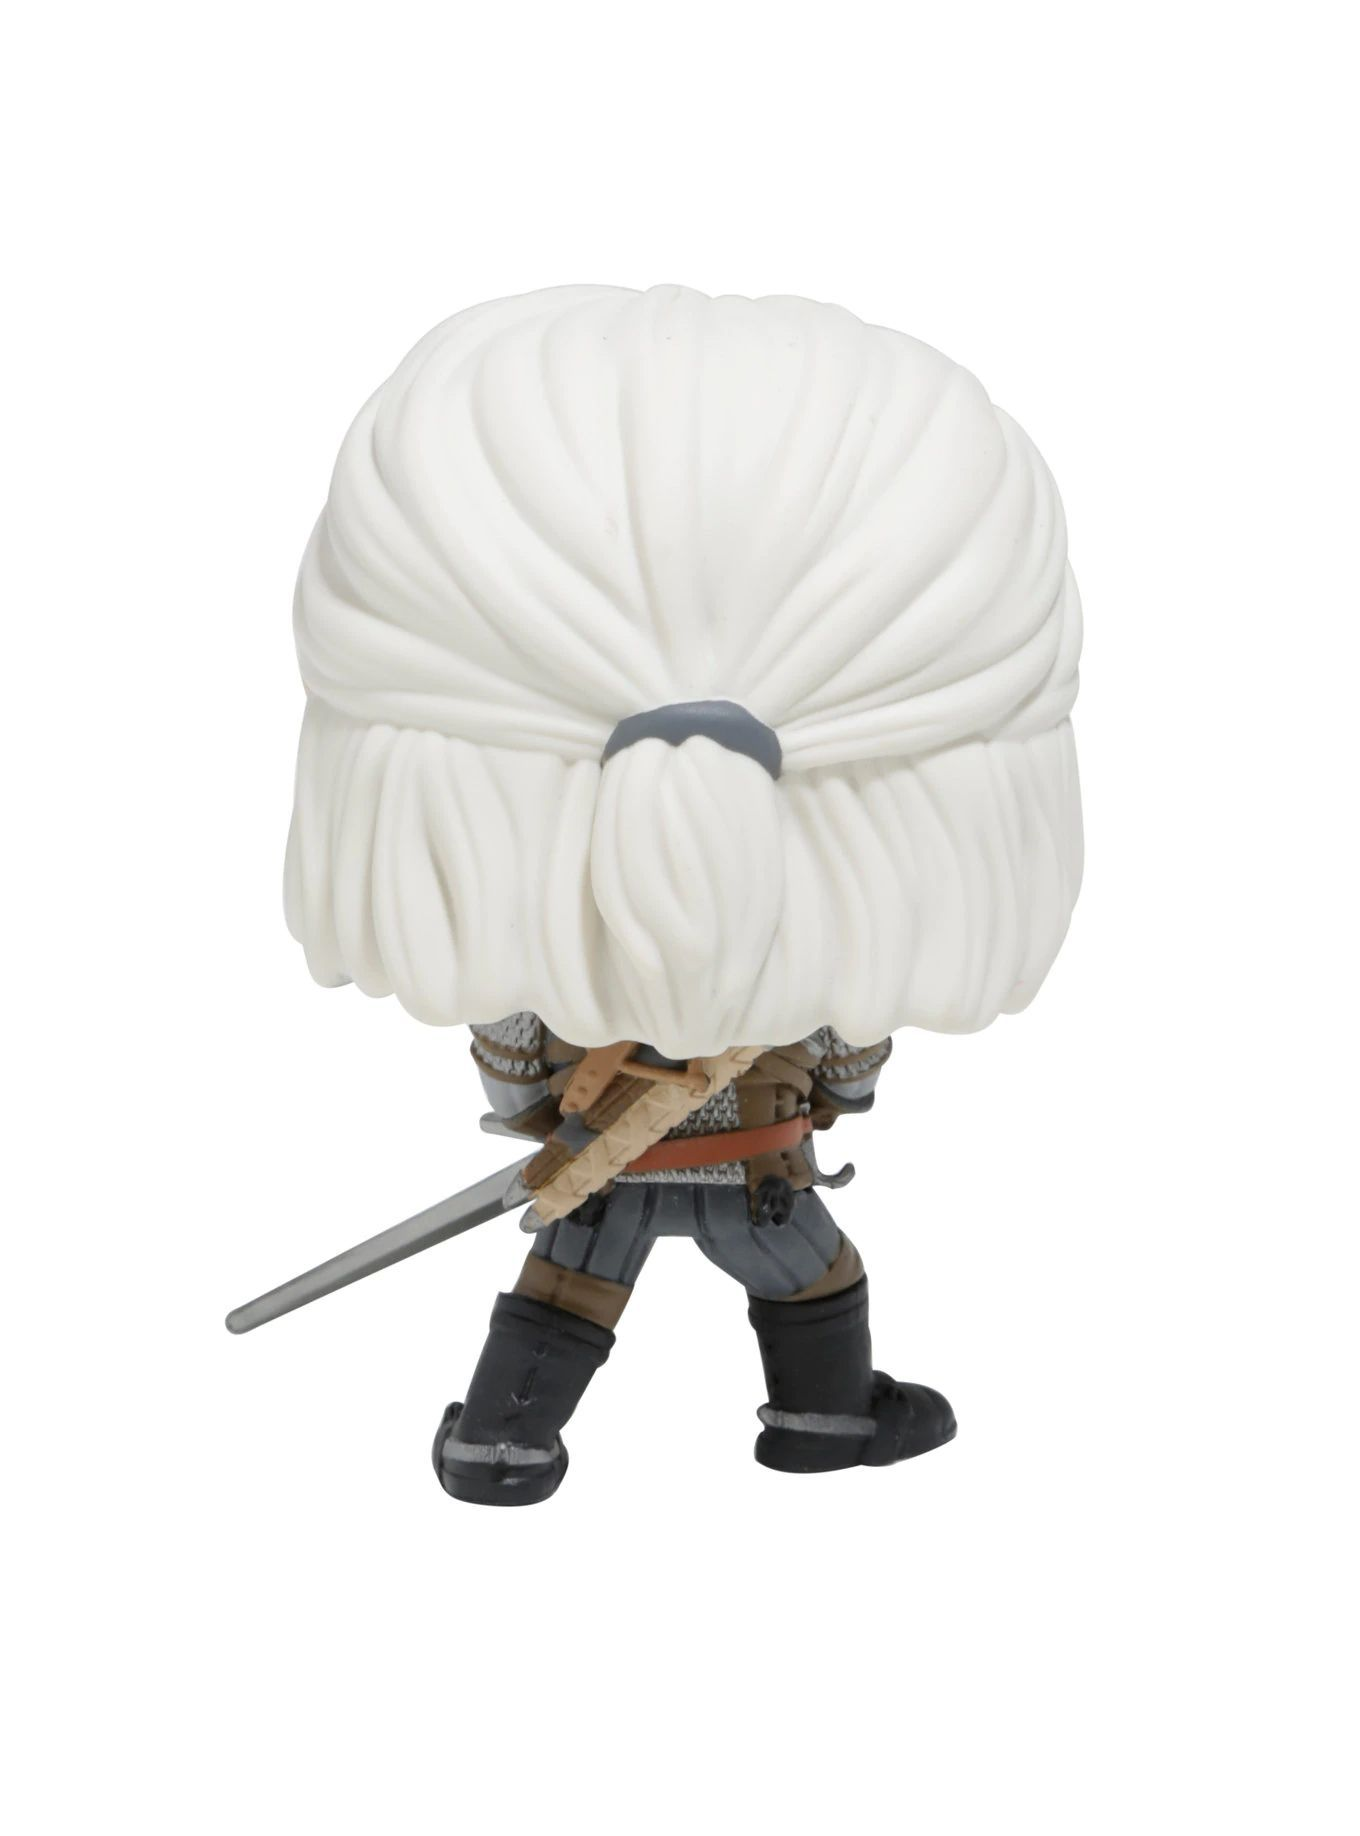 Geralt #149 - The Witcher 3 - Funko Pop! Games